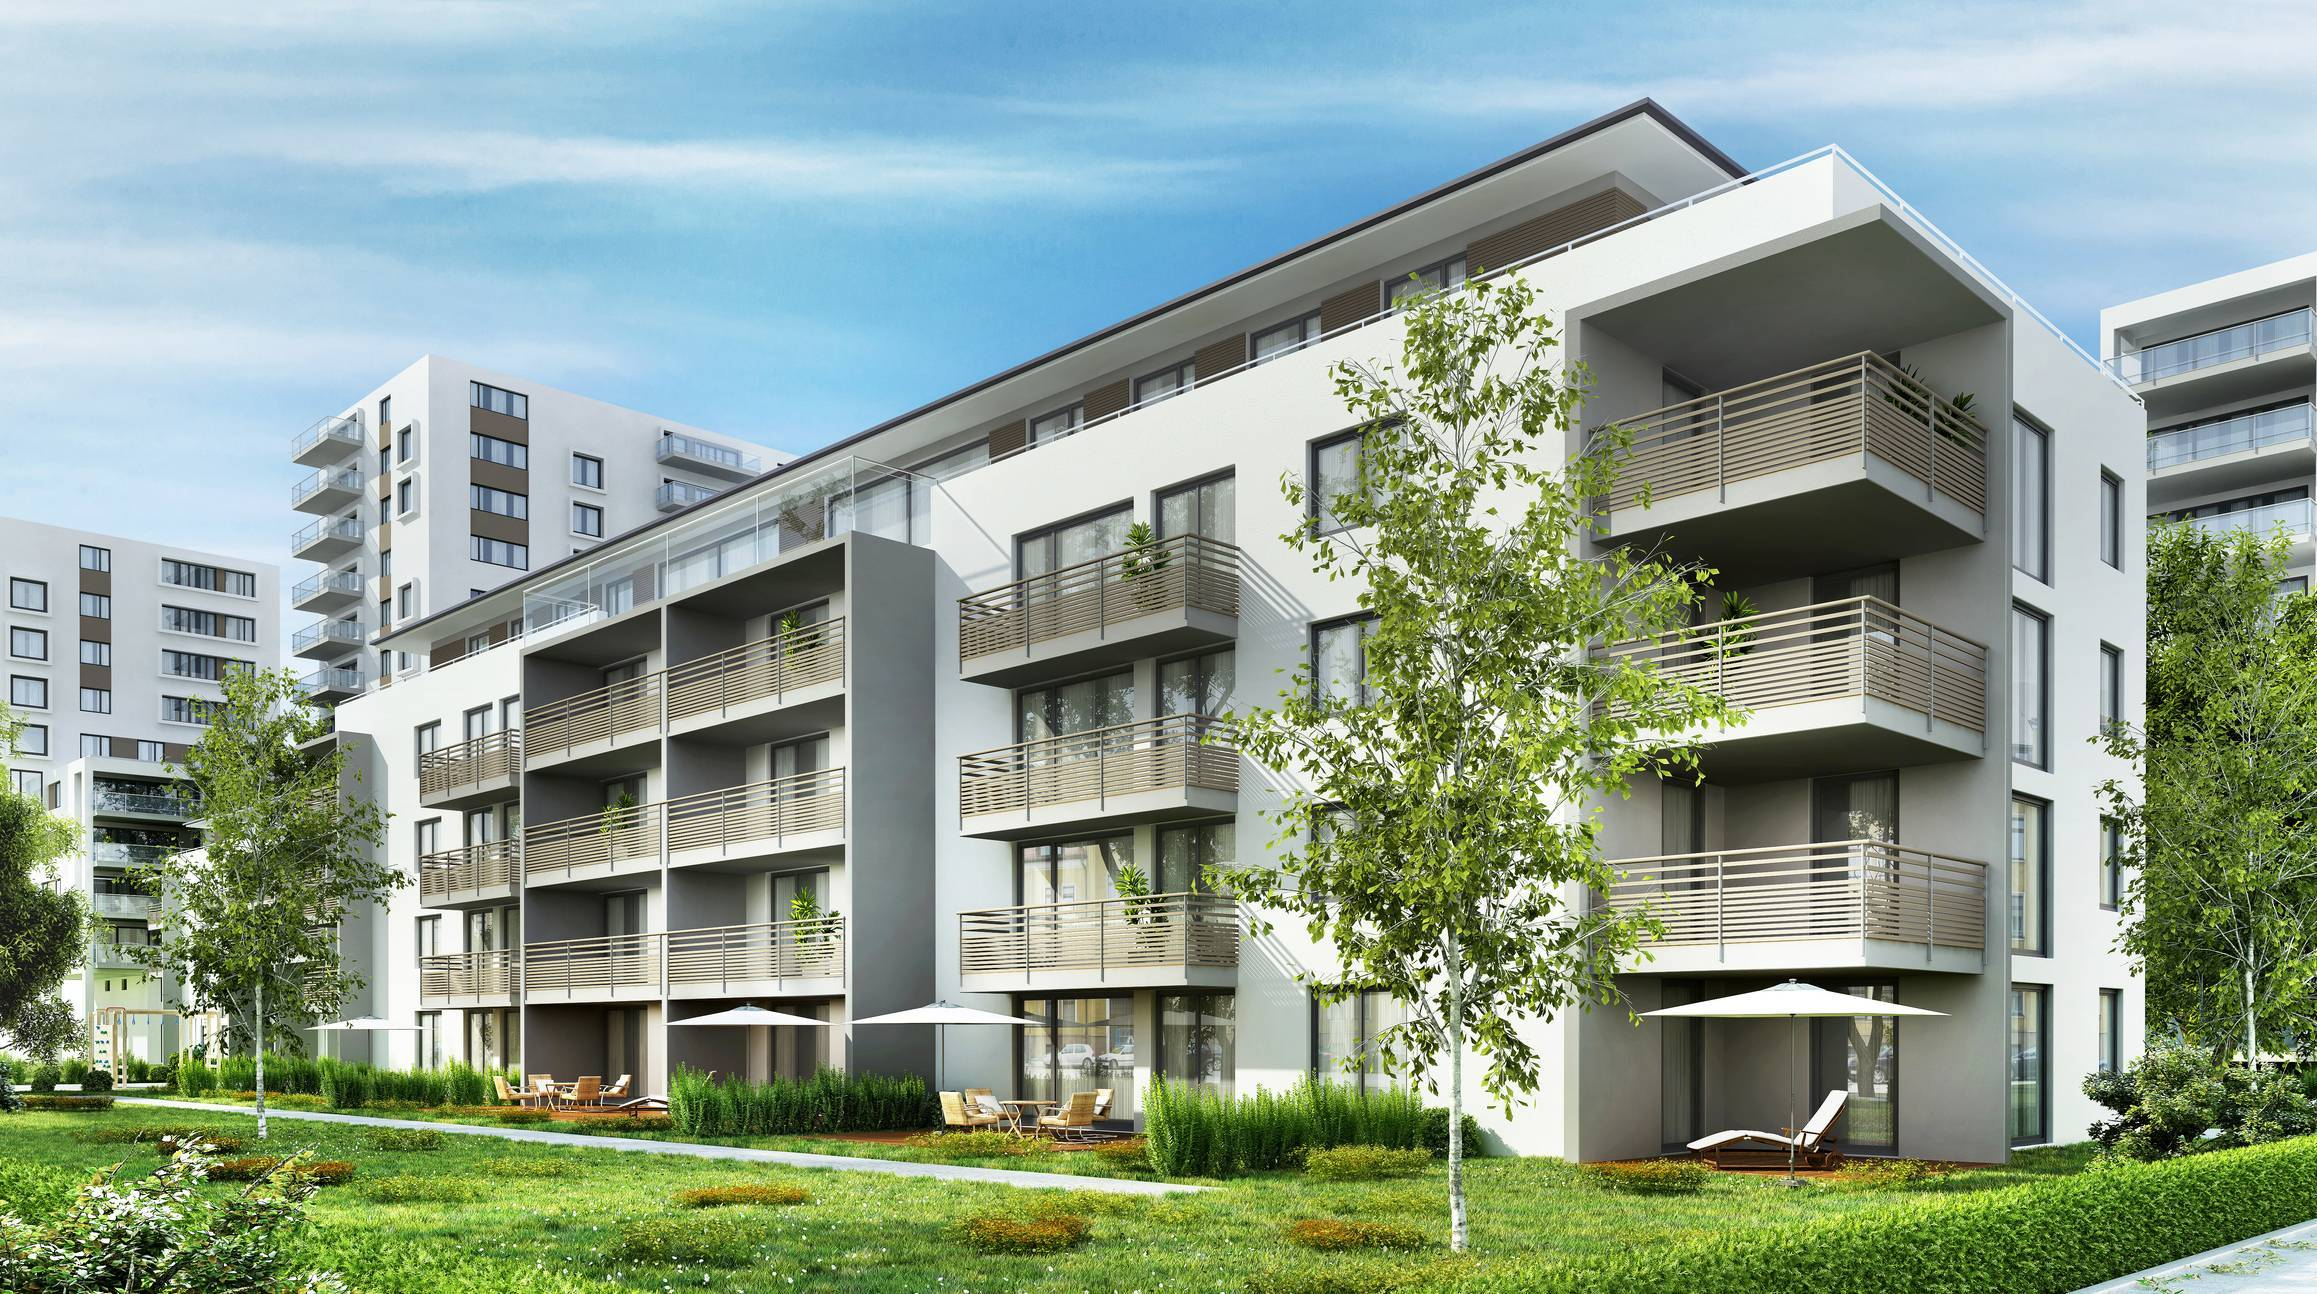 investissement immobilier, les obstacles